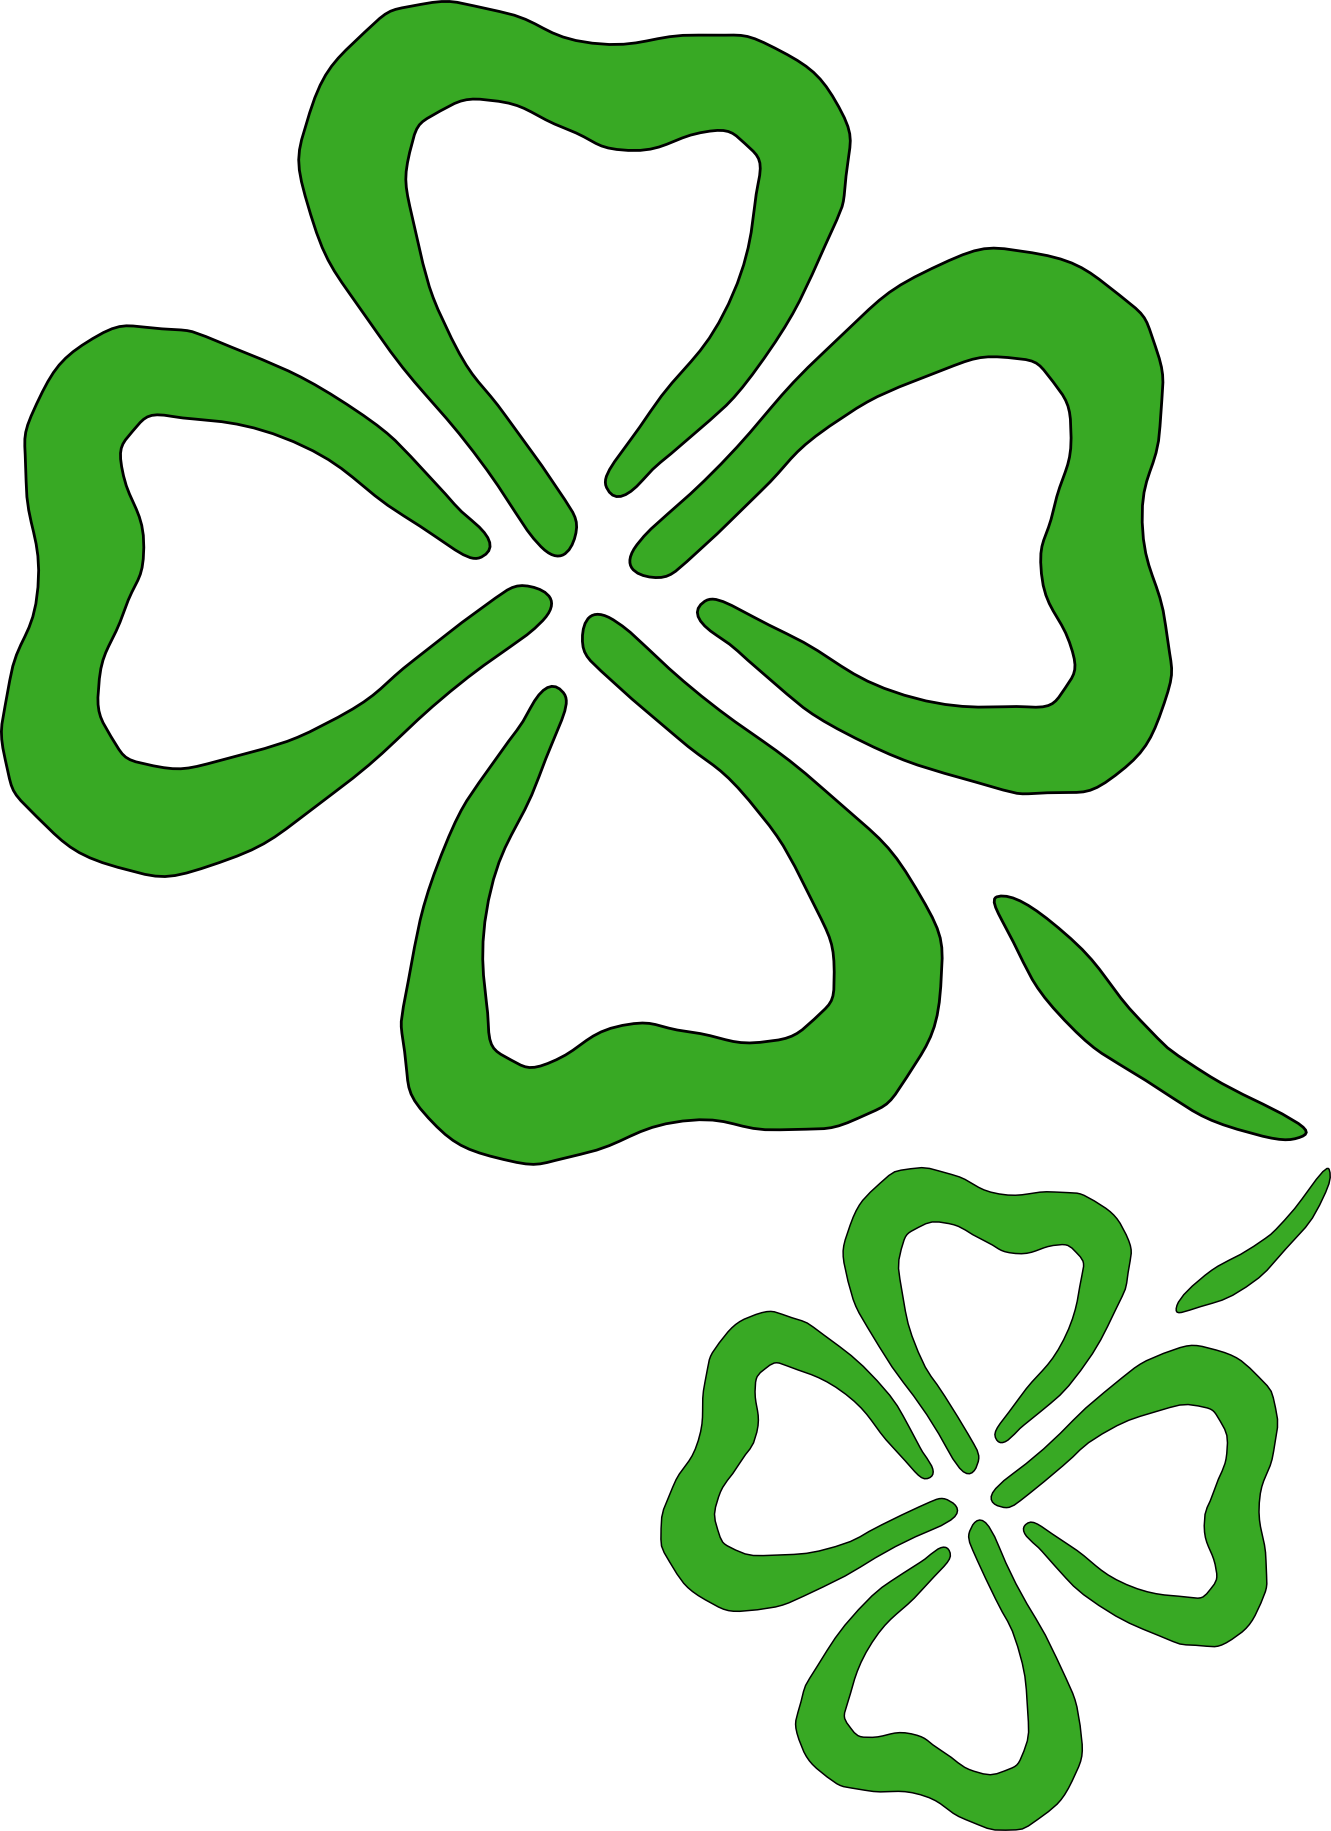 Free shamrock clipart public domain holiday stpatrick clip art 5 2